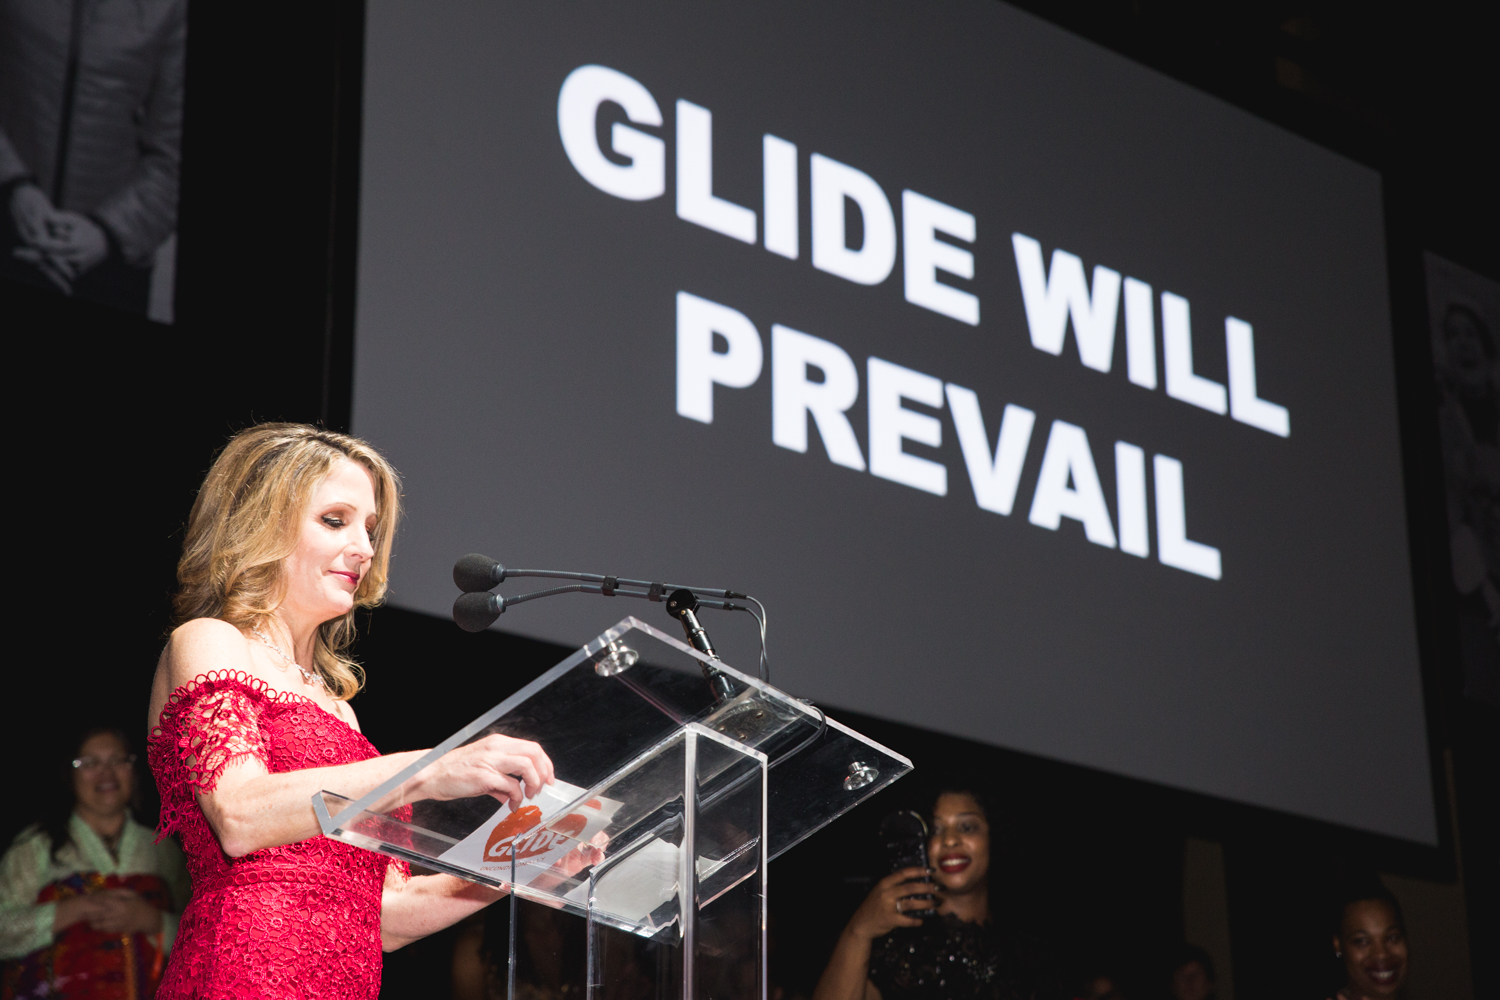 glide-sf-event-photography-fundraiser.jpg